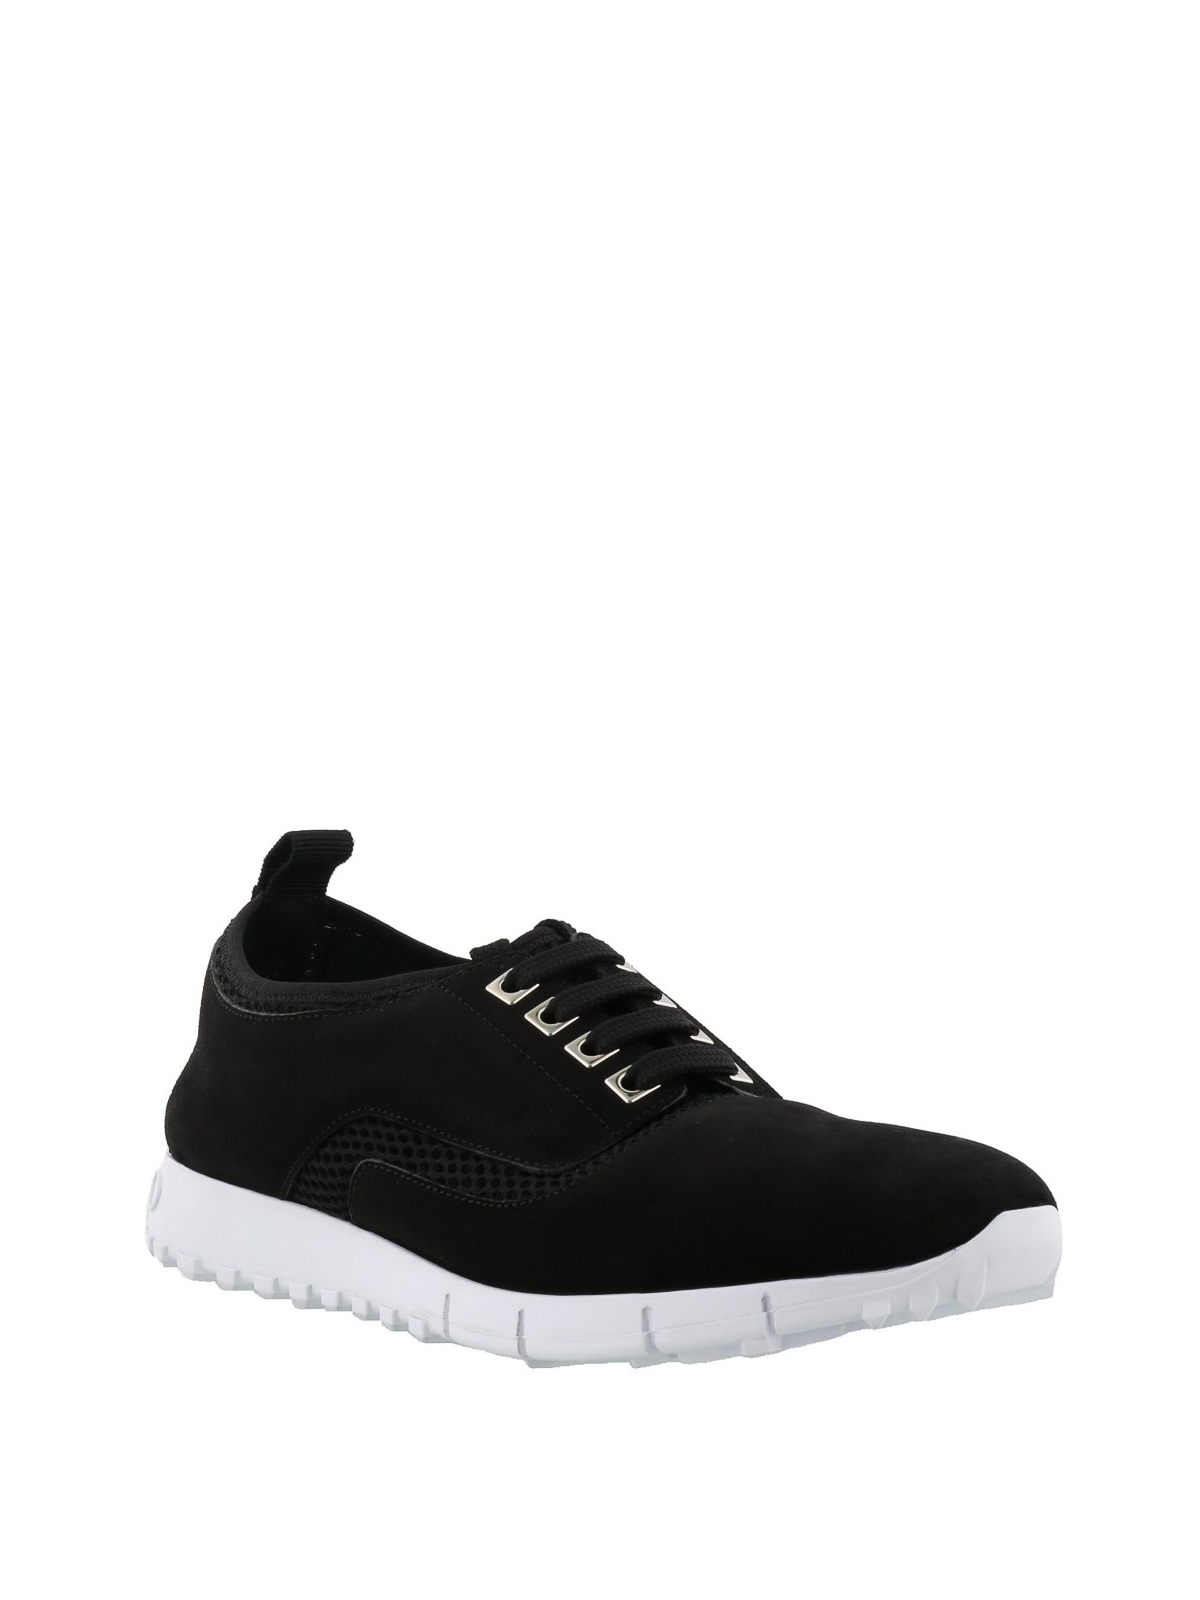 Jimmy chooDesigner Shoes, Jenson Mesh and Suede Trainers